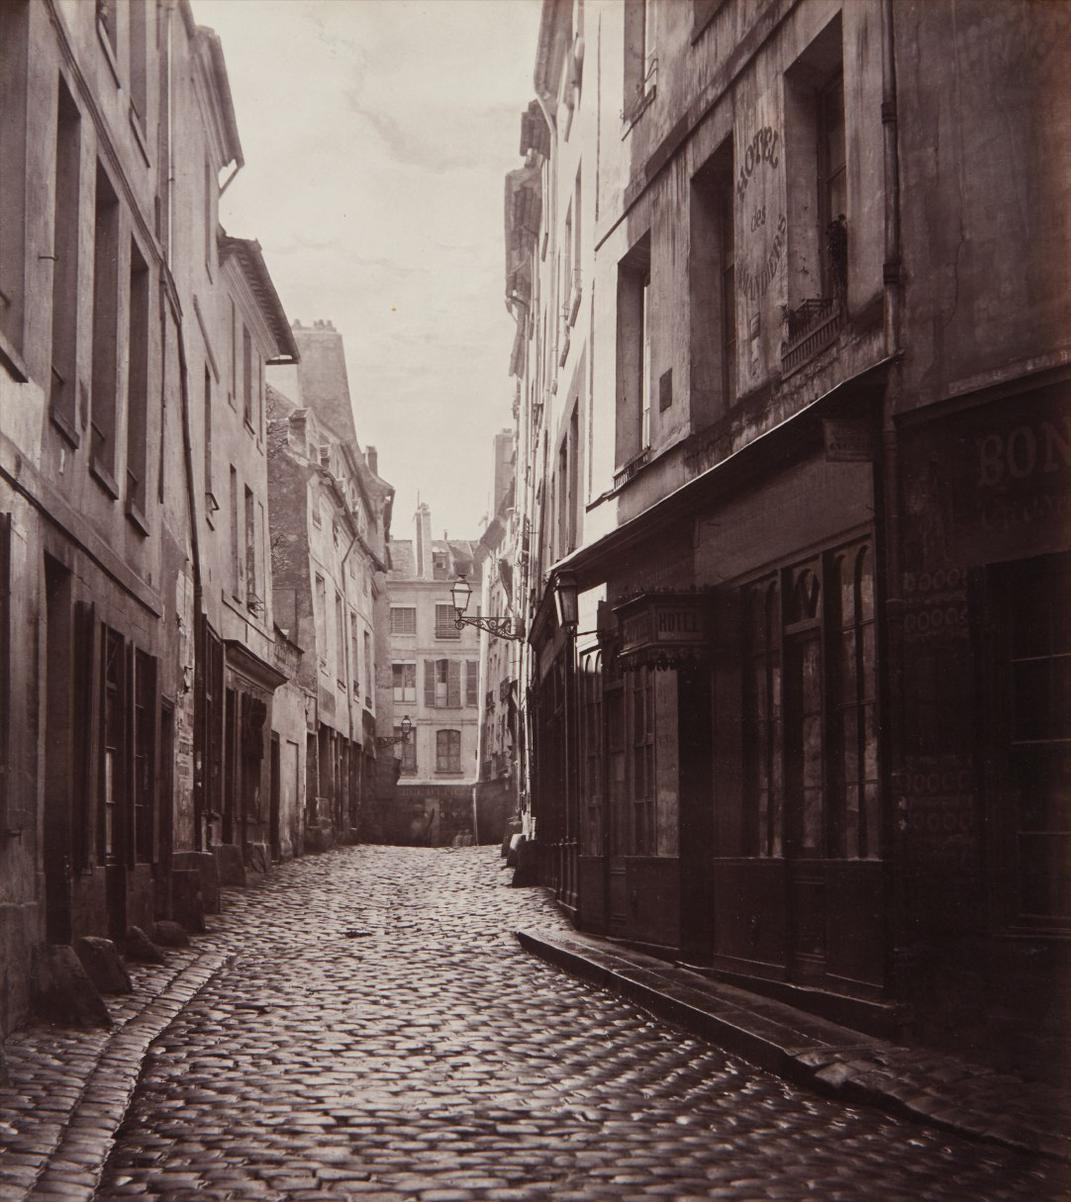 Charles Marville-Rue Des Amandiers-1860